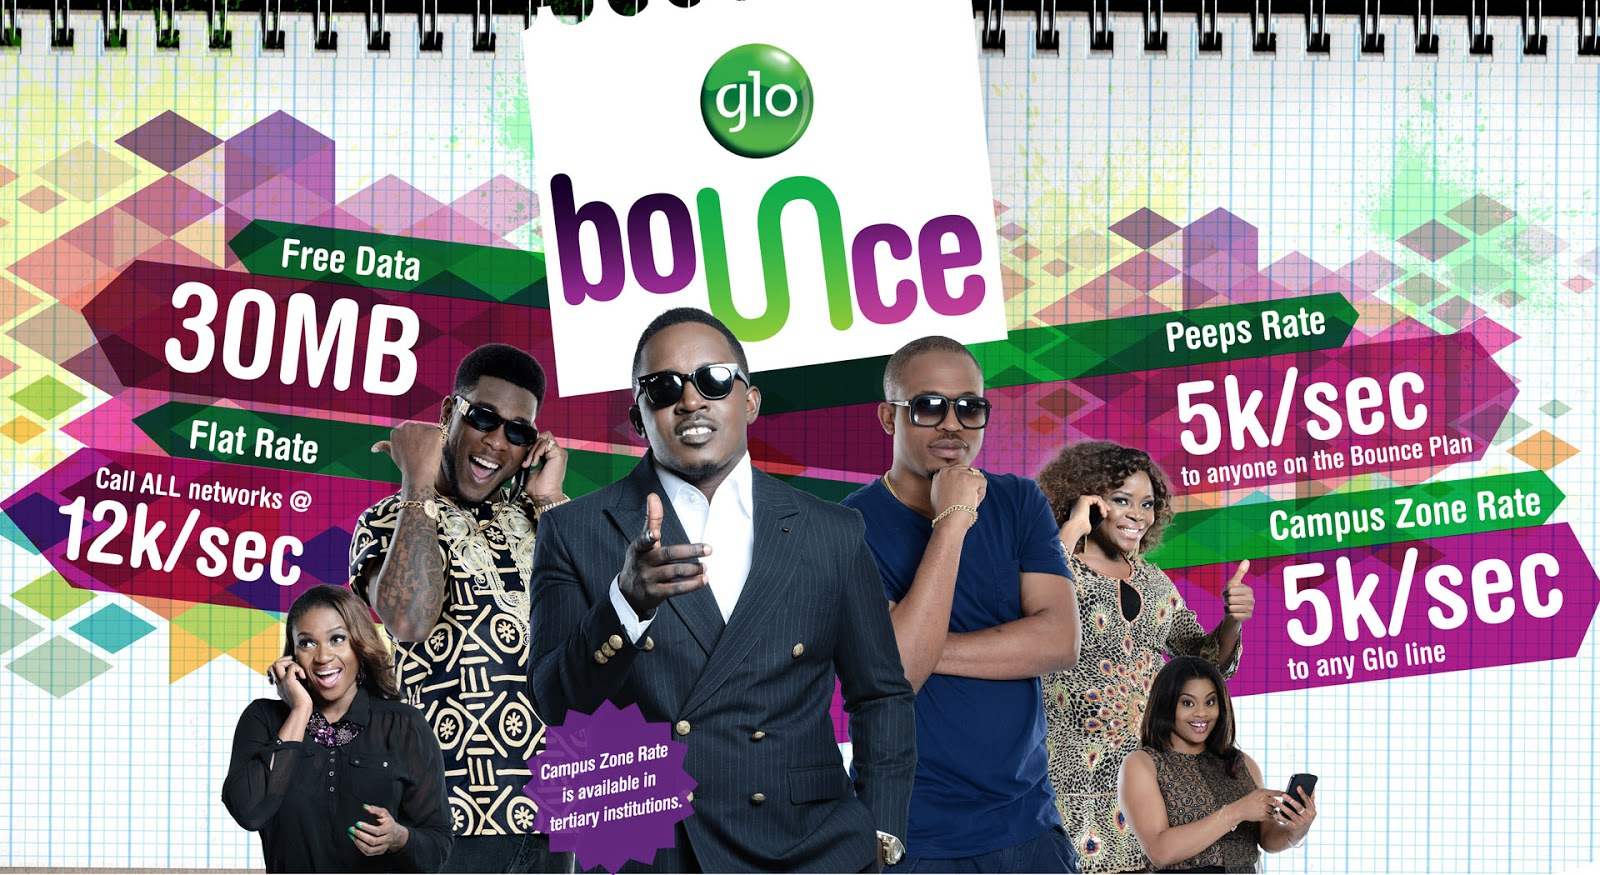 Android Smartphone Glo Bounce 30MB Subscription